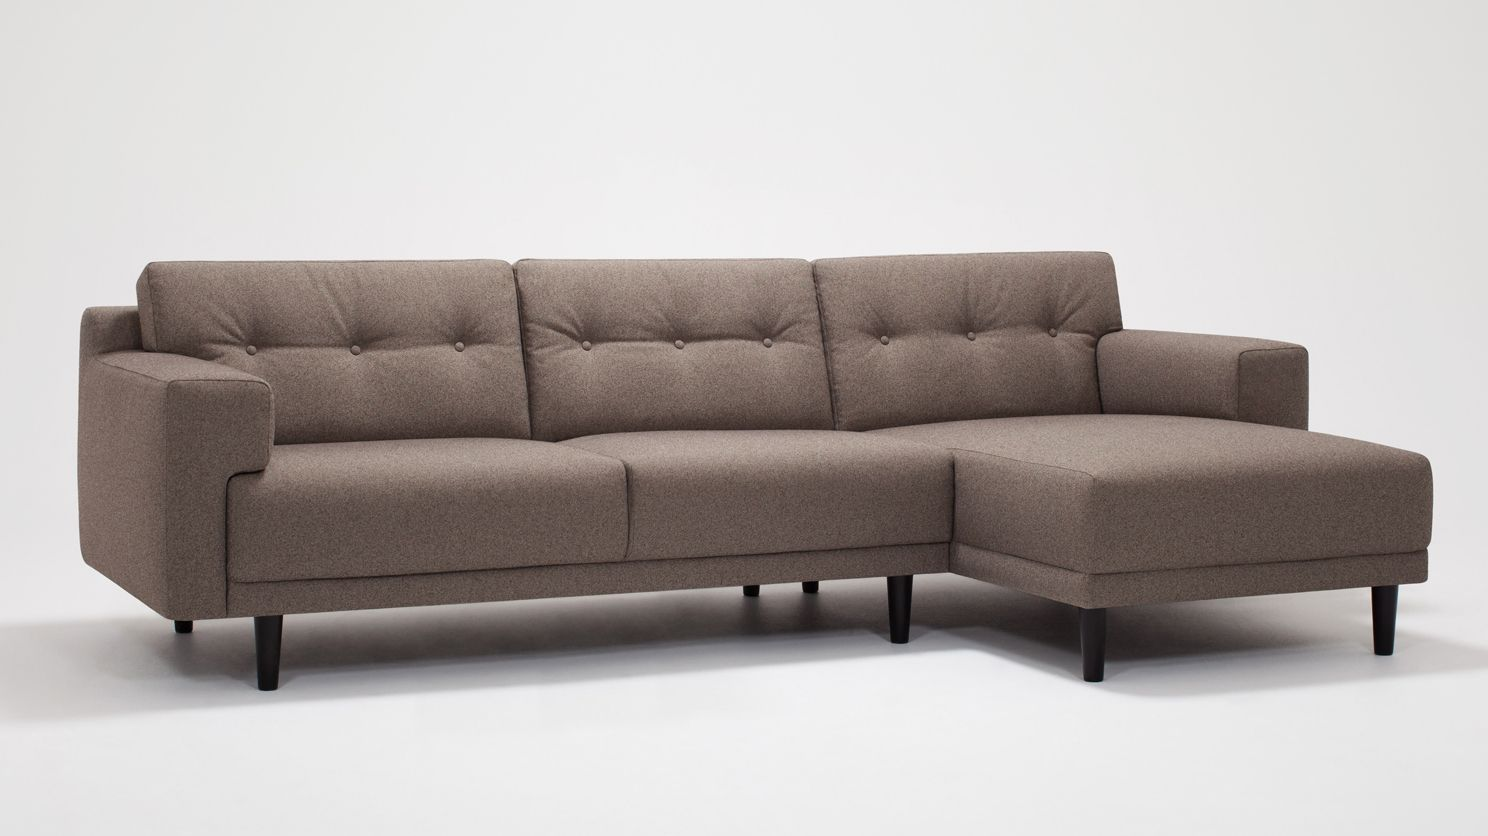 Remi 2 Piece Sectional Sofa With Chaise Fabric Eq3 Modern Furniture